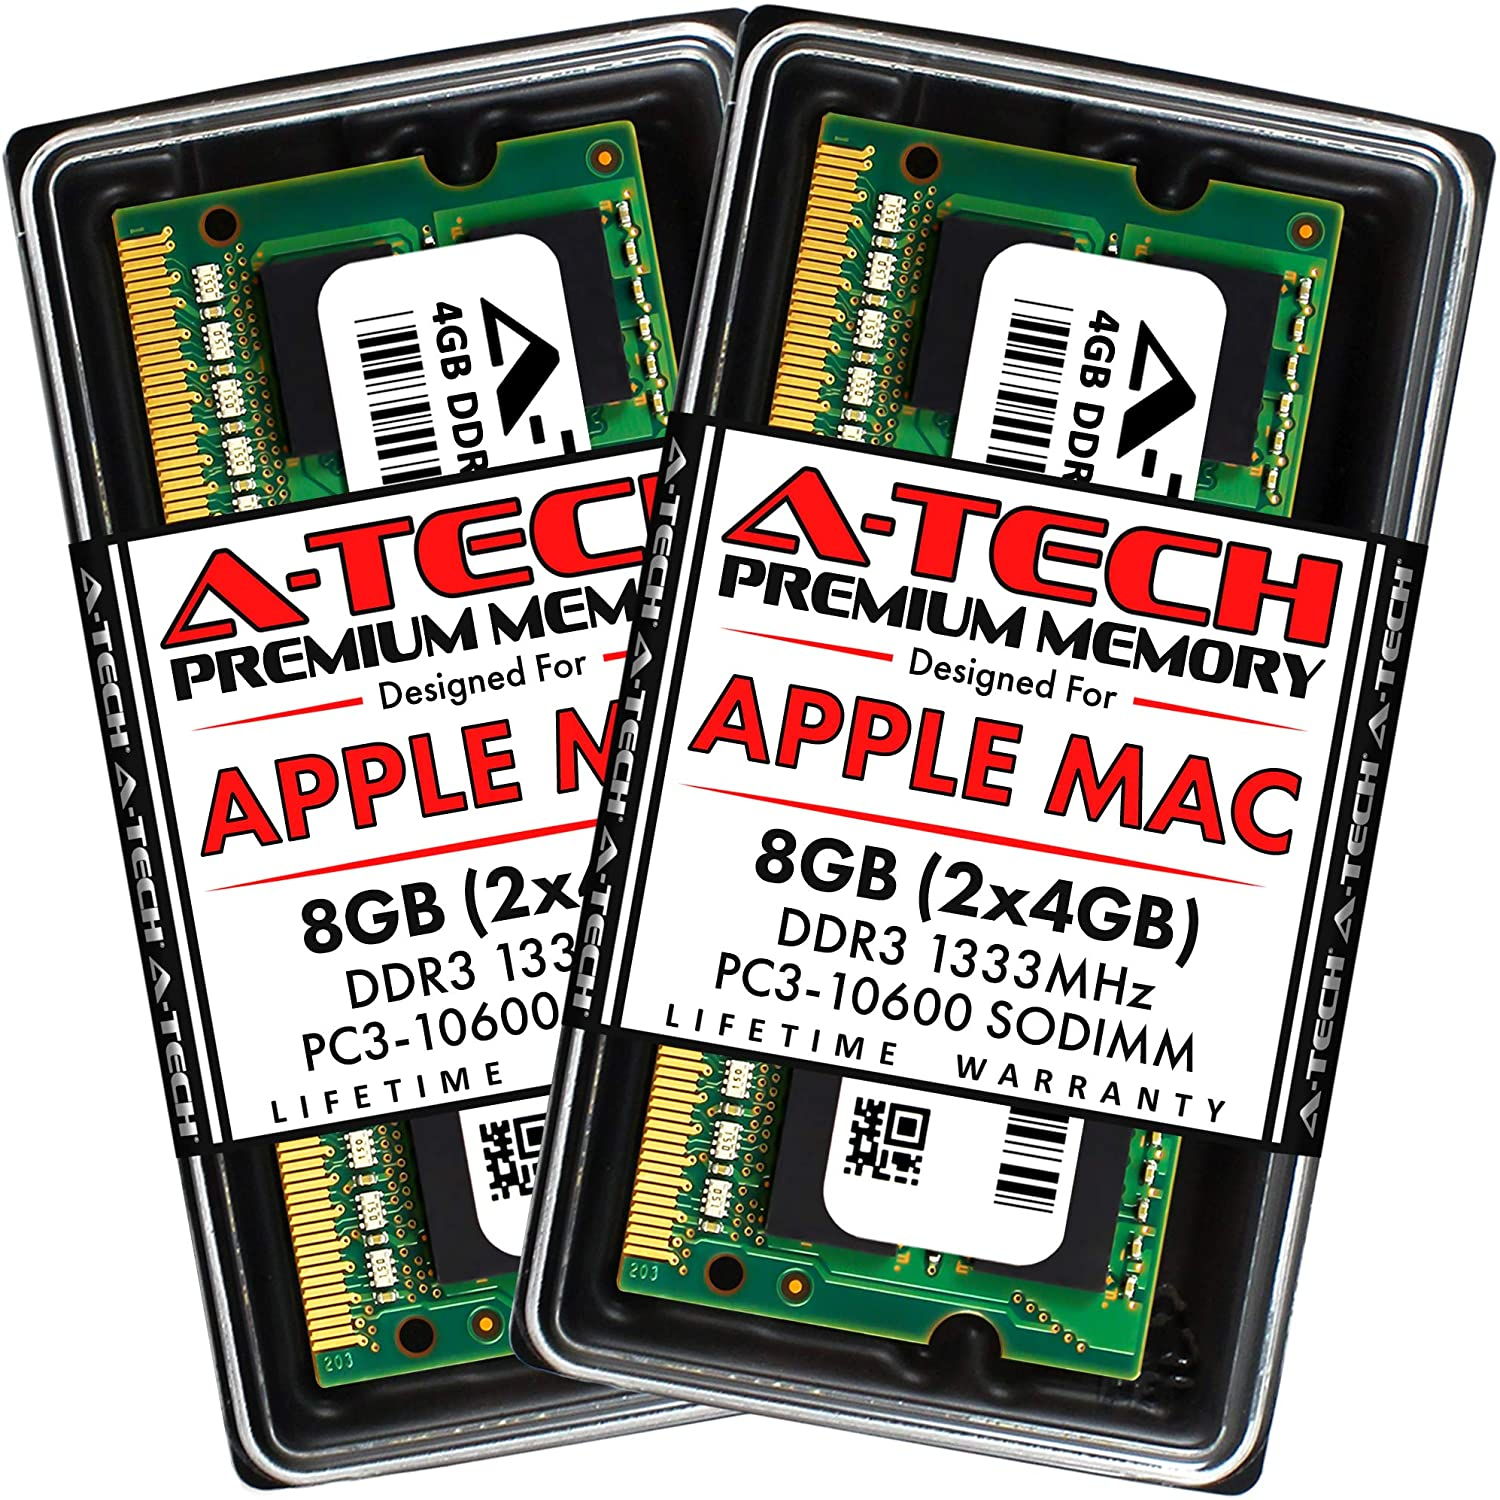 A-Tech 8GB Kit (2x4GB) DDR3 1333MHz SODIMM PC3-10600 RAM for Apple MacBook Pro (Early/Late 2011), iMac (Mid 2010, Mid/Late 2011), Mac Mini (Mid 2011)